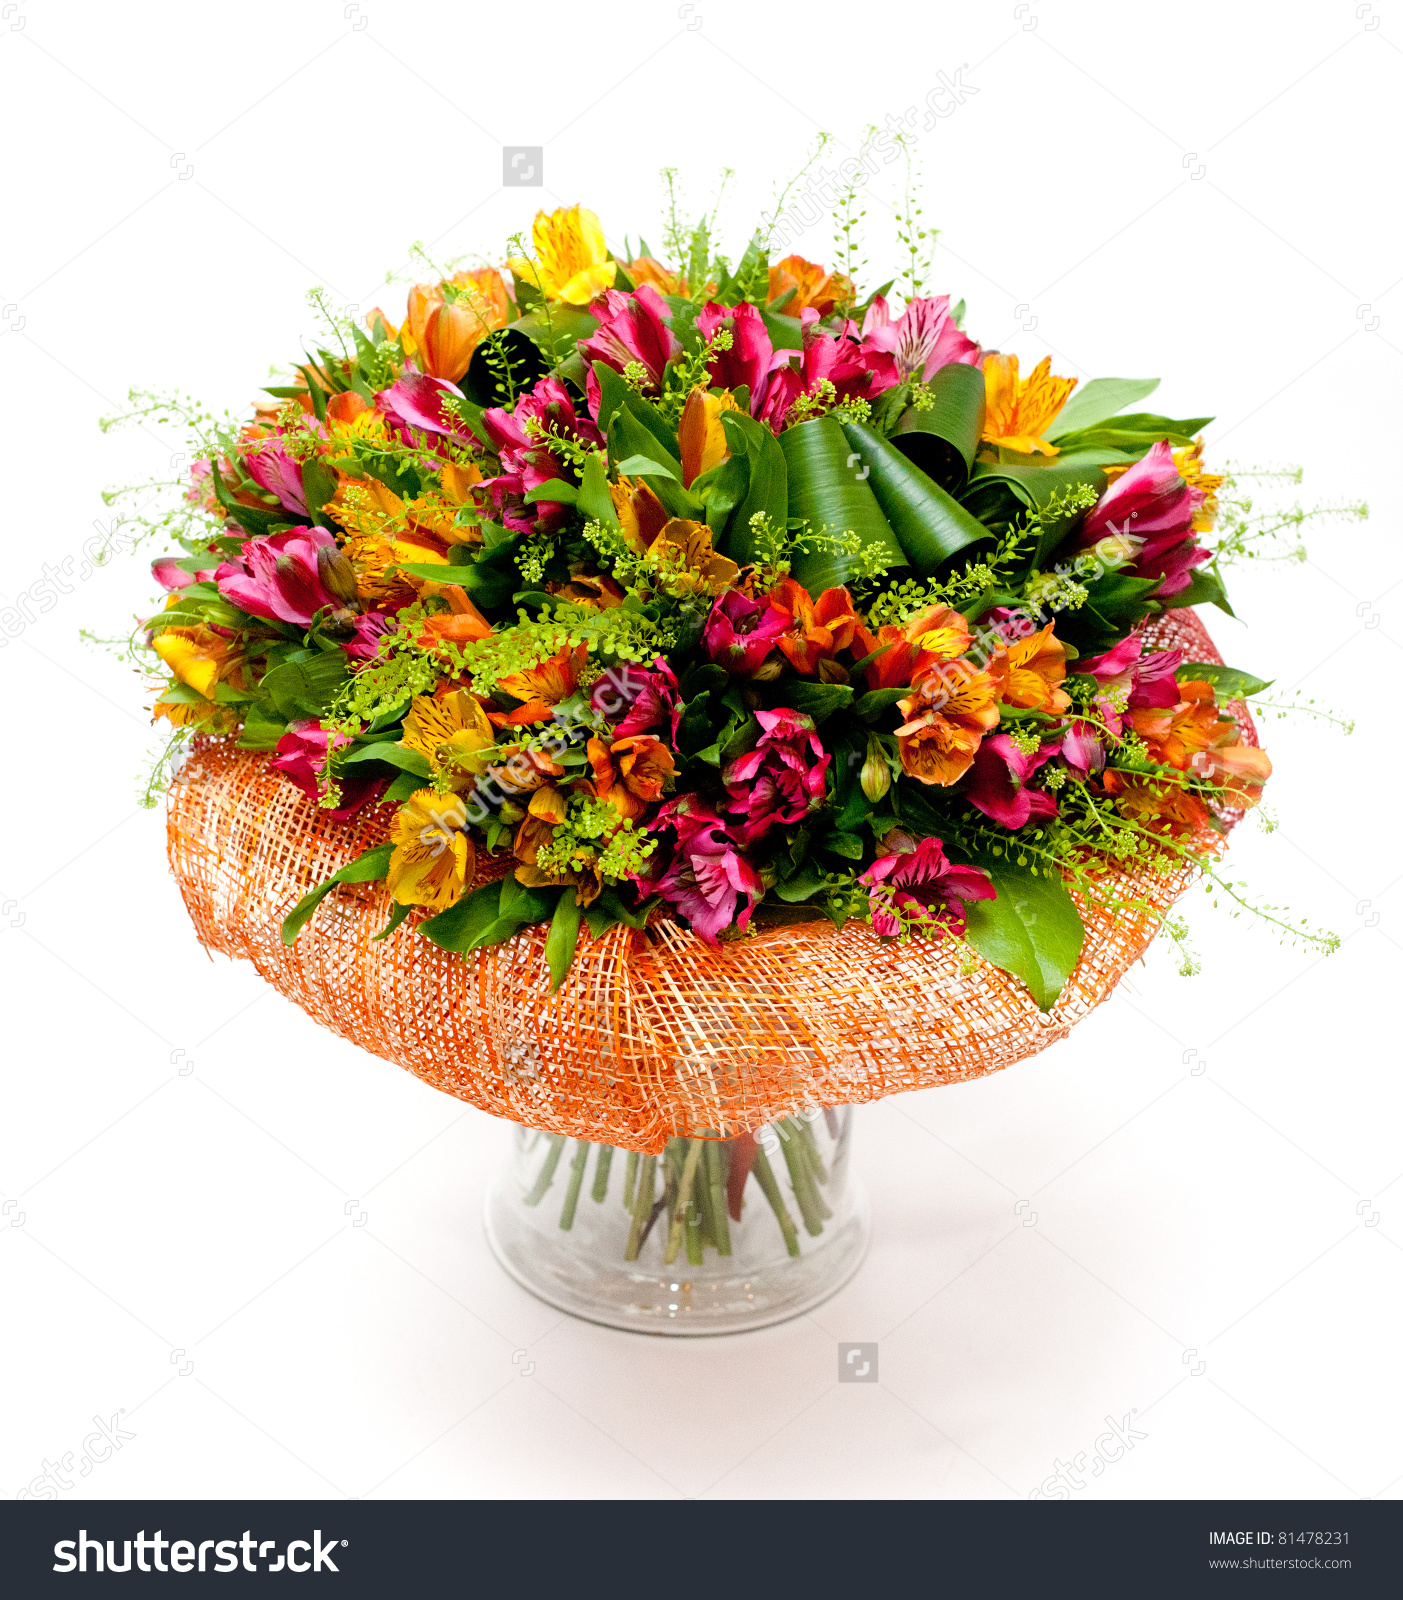 Big bunch of flowers image graphic download Big Bunch Multicolored Flowers Vase Stock Photo 81478231 ... graphic download